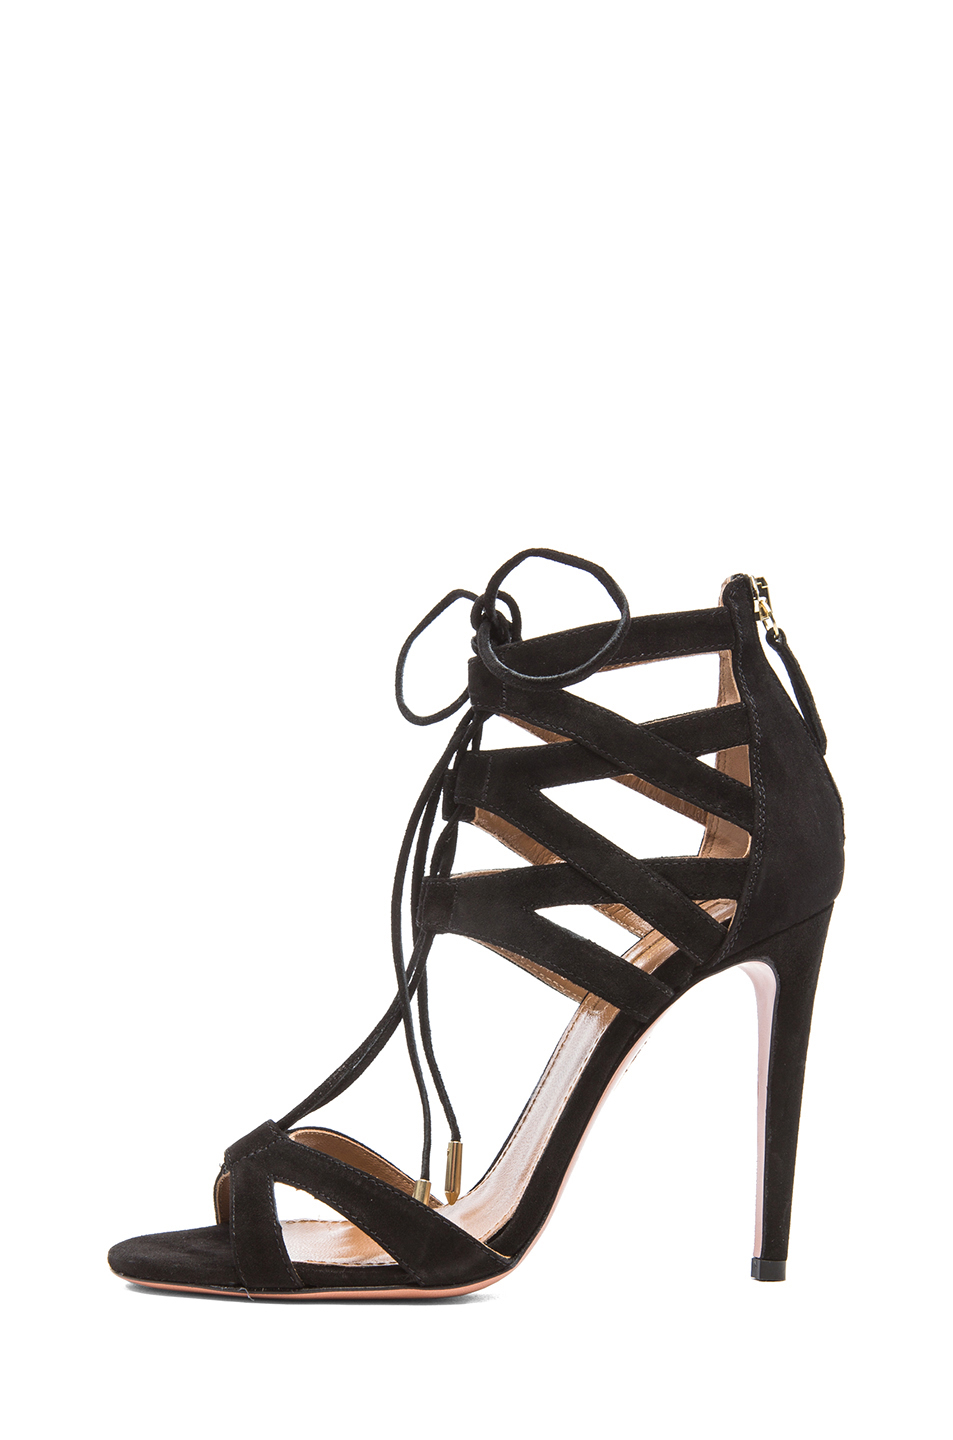 Aquazzura | Beverly Hills Suede Sandals in Black